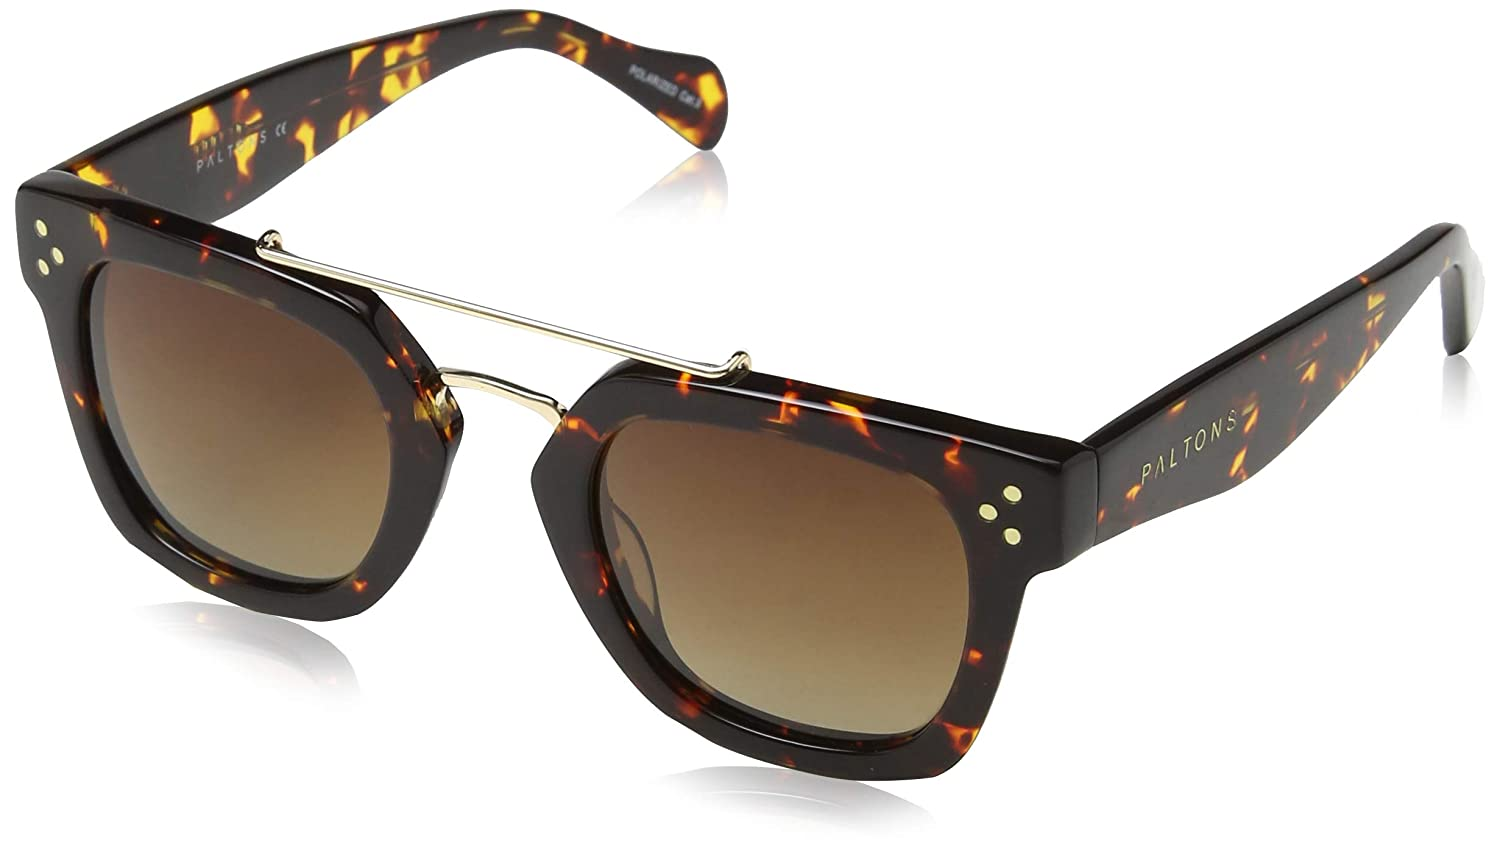 Paltons Unisex Adults' Saona 0978 145 Mm Sunglasses, Multicolour (Multicolor), 145 2022-10441